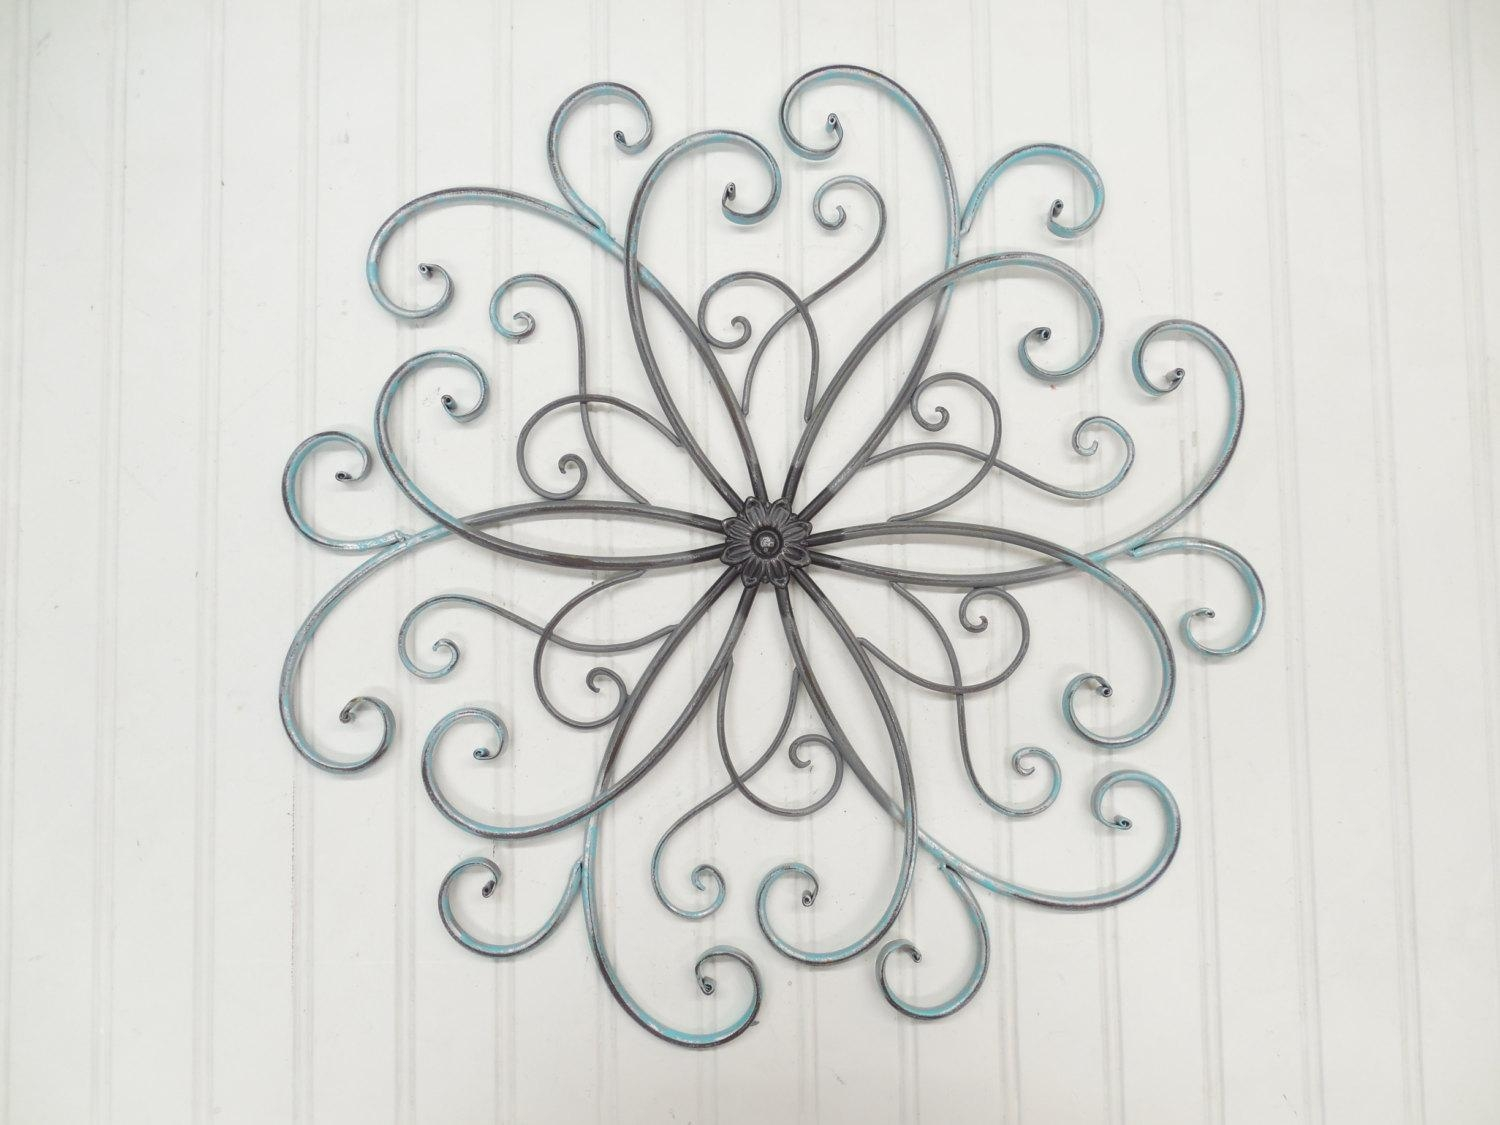 Tips & Ideas: Exciting Wrought Iron Wall Art For Interiors Intended For Wrought Iron Garden Wall Art (View 11 of 20)